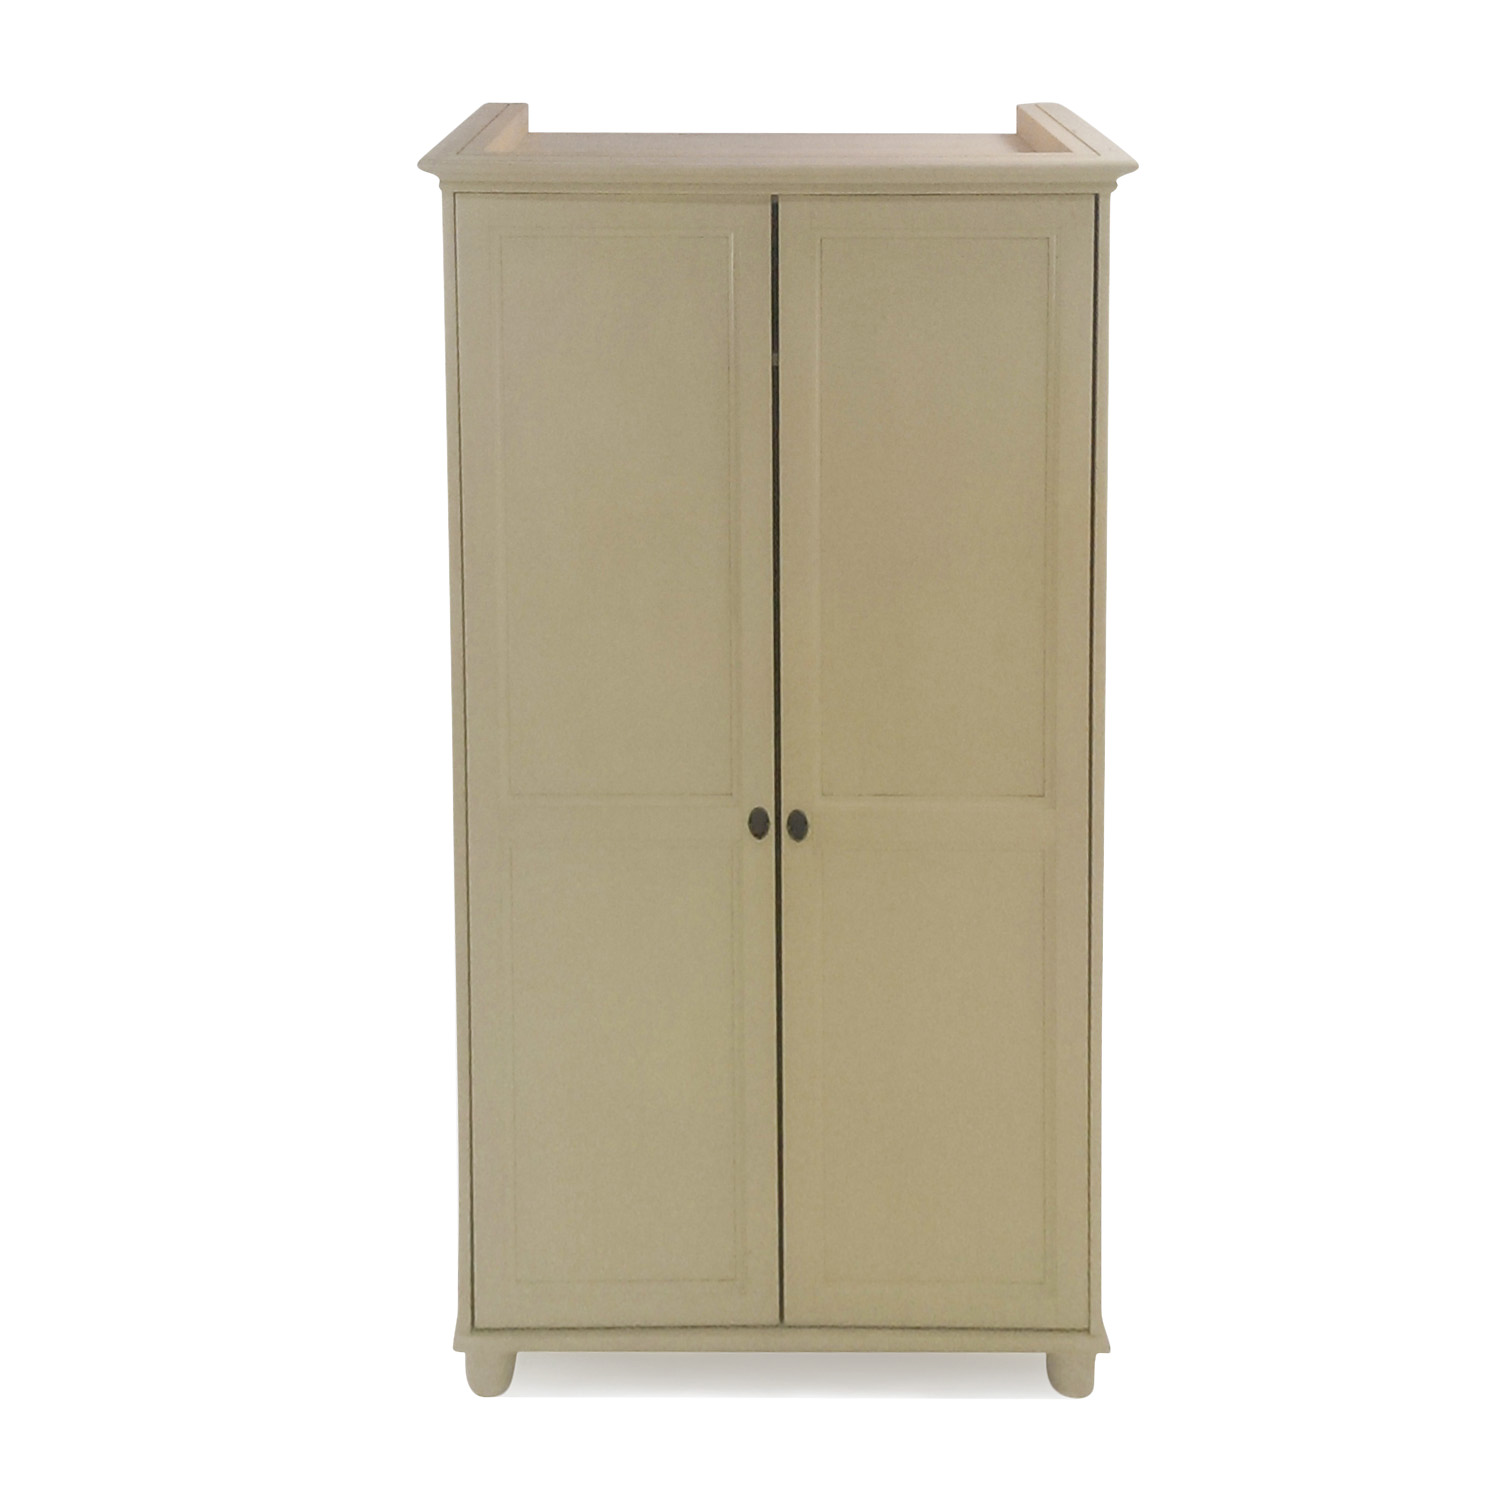 Crate and Barrel Crate and Barrel Light Mint Armoire used